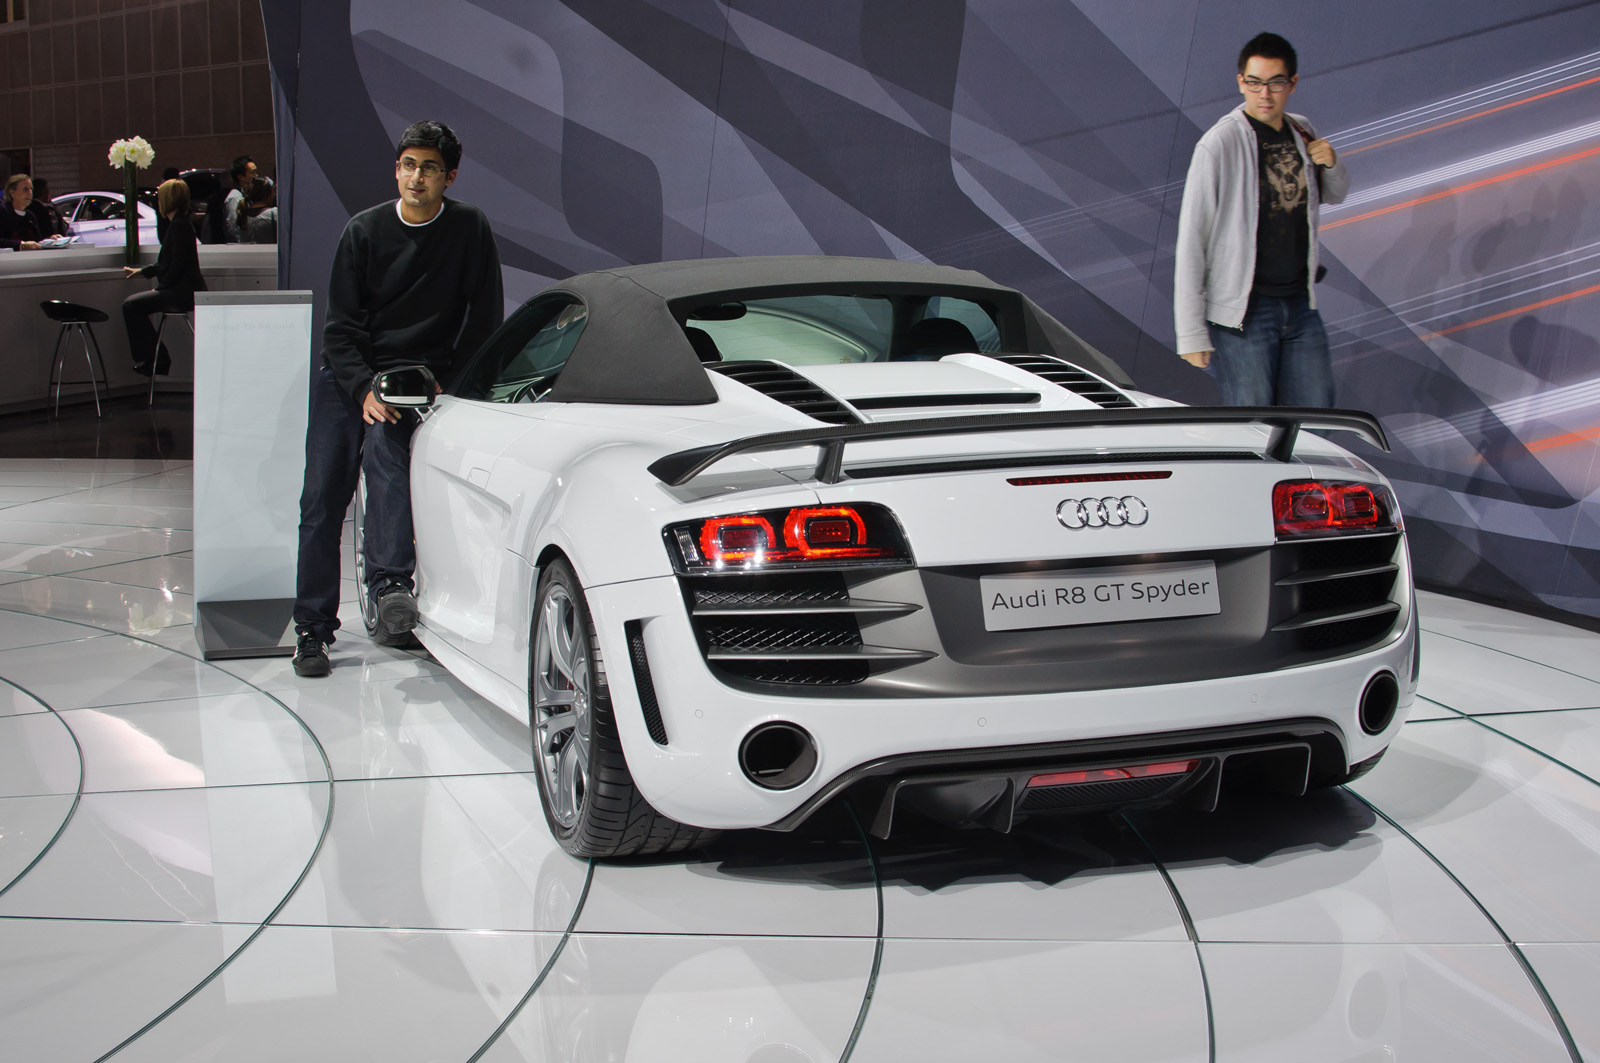 Stock Photo Medical Symbol Image24570530 furthermore File Audi R8 GT Spyder  US    Flickr   skinnylawyer further Templates Search Details besides Primary Logo in addition Templates search details. on generic sports symbol